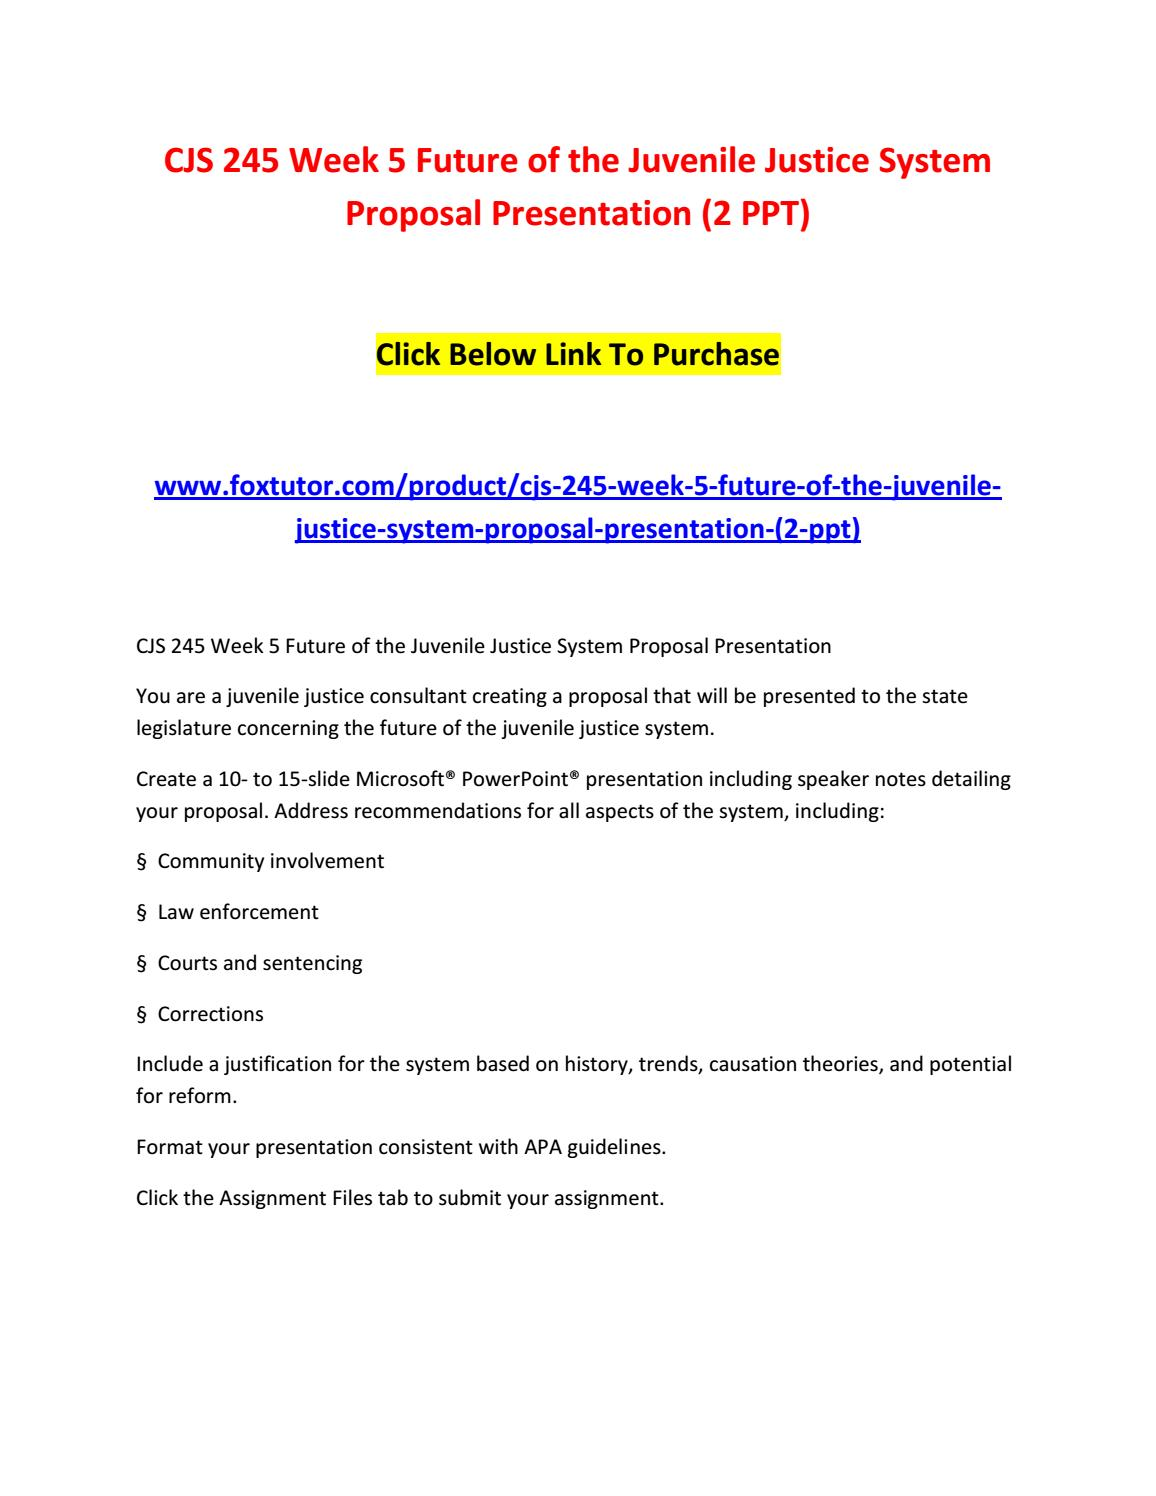 Essay on Future of the Juvenile Justice System Proposal